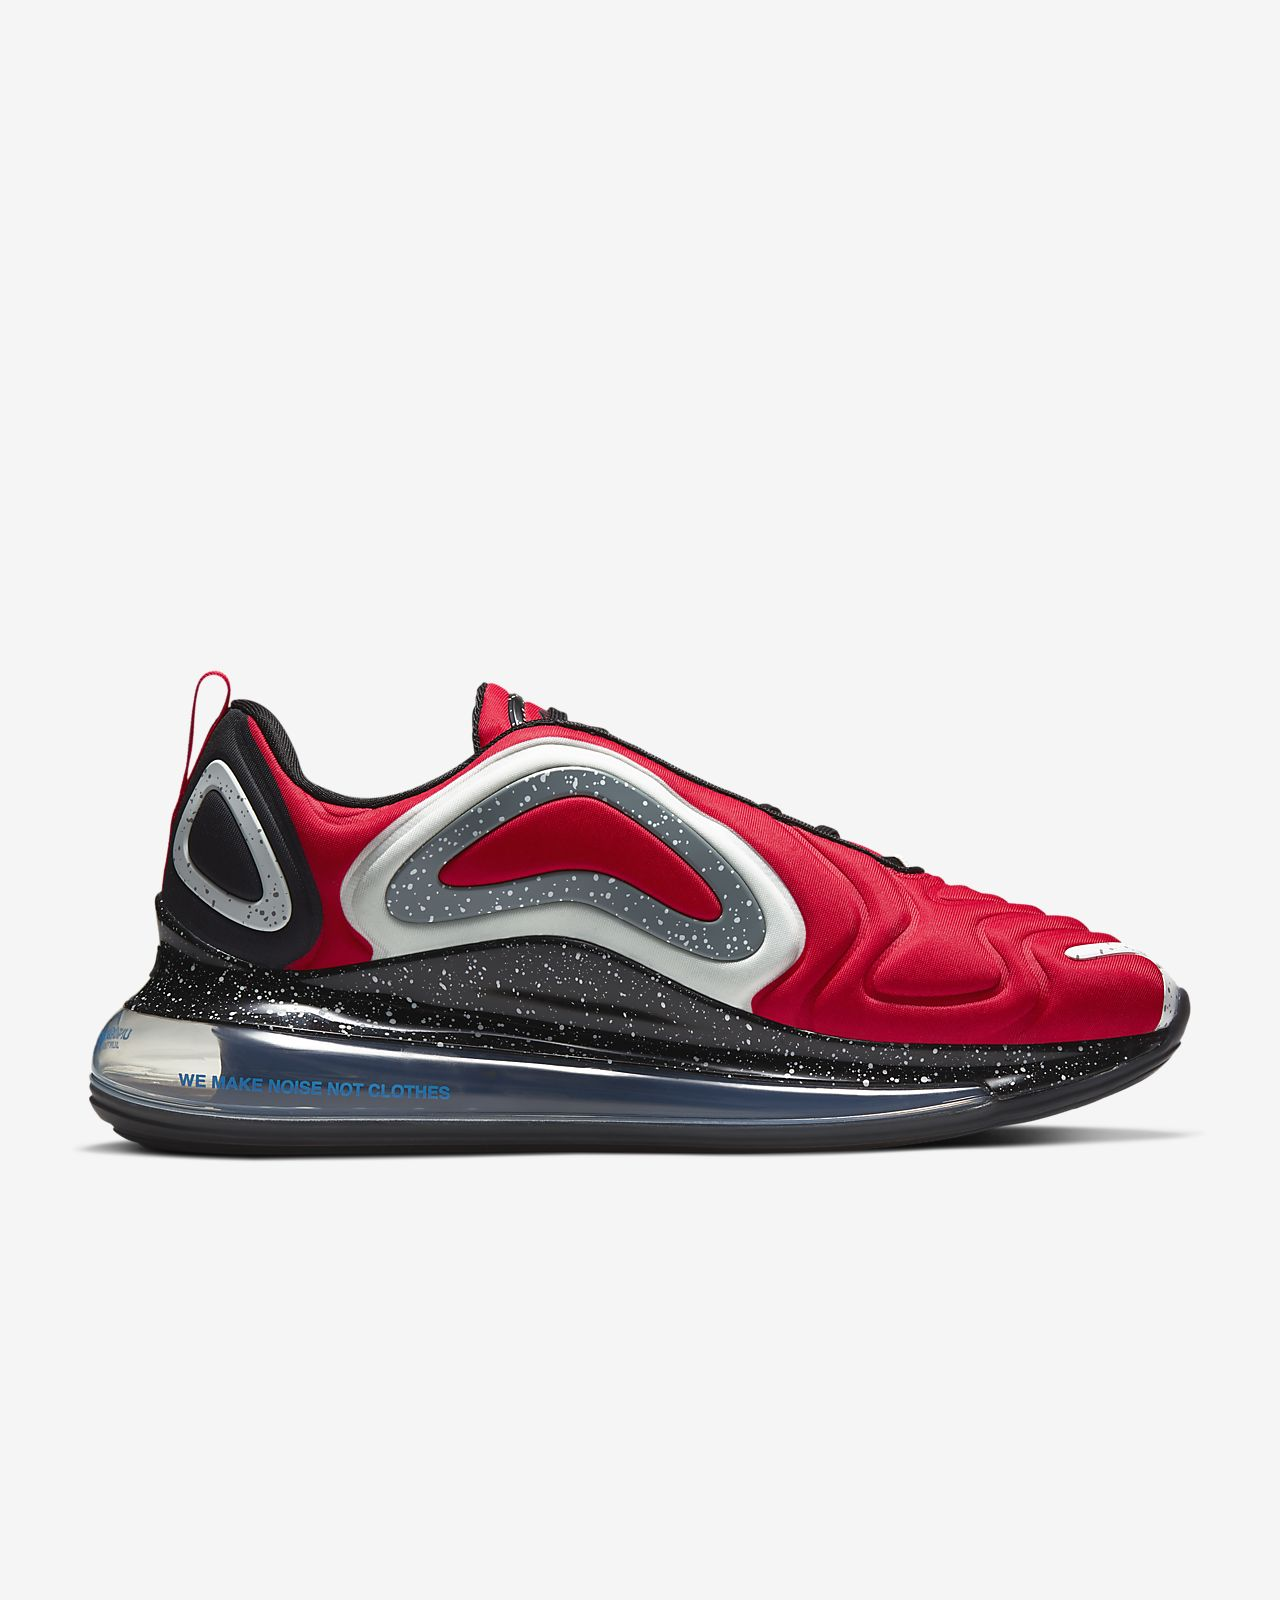 Nike x Undercover Air Max 720 Shoe